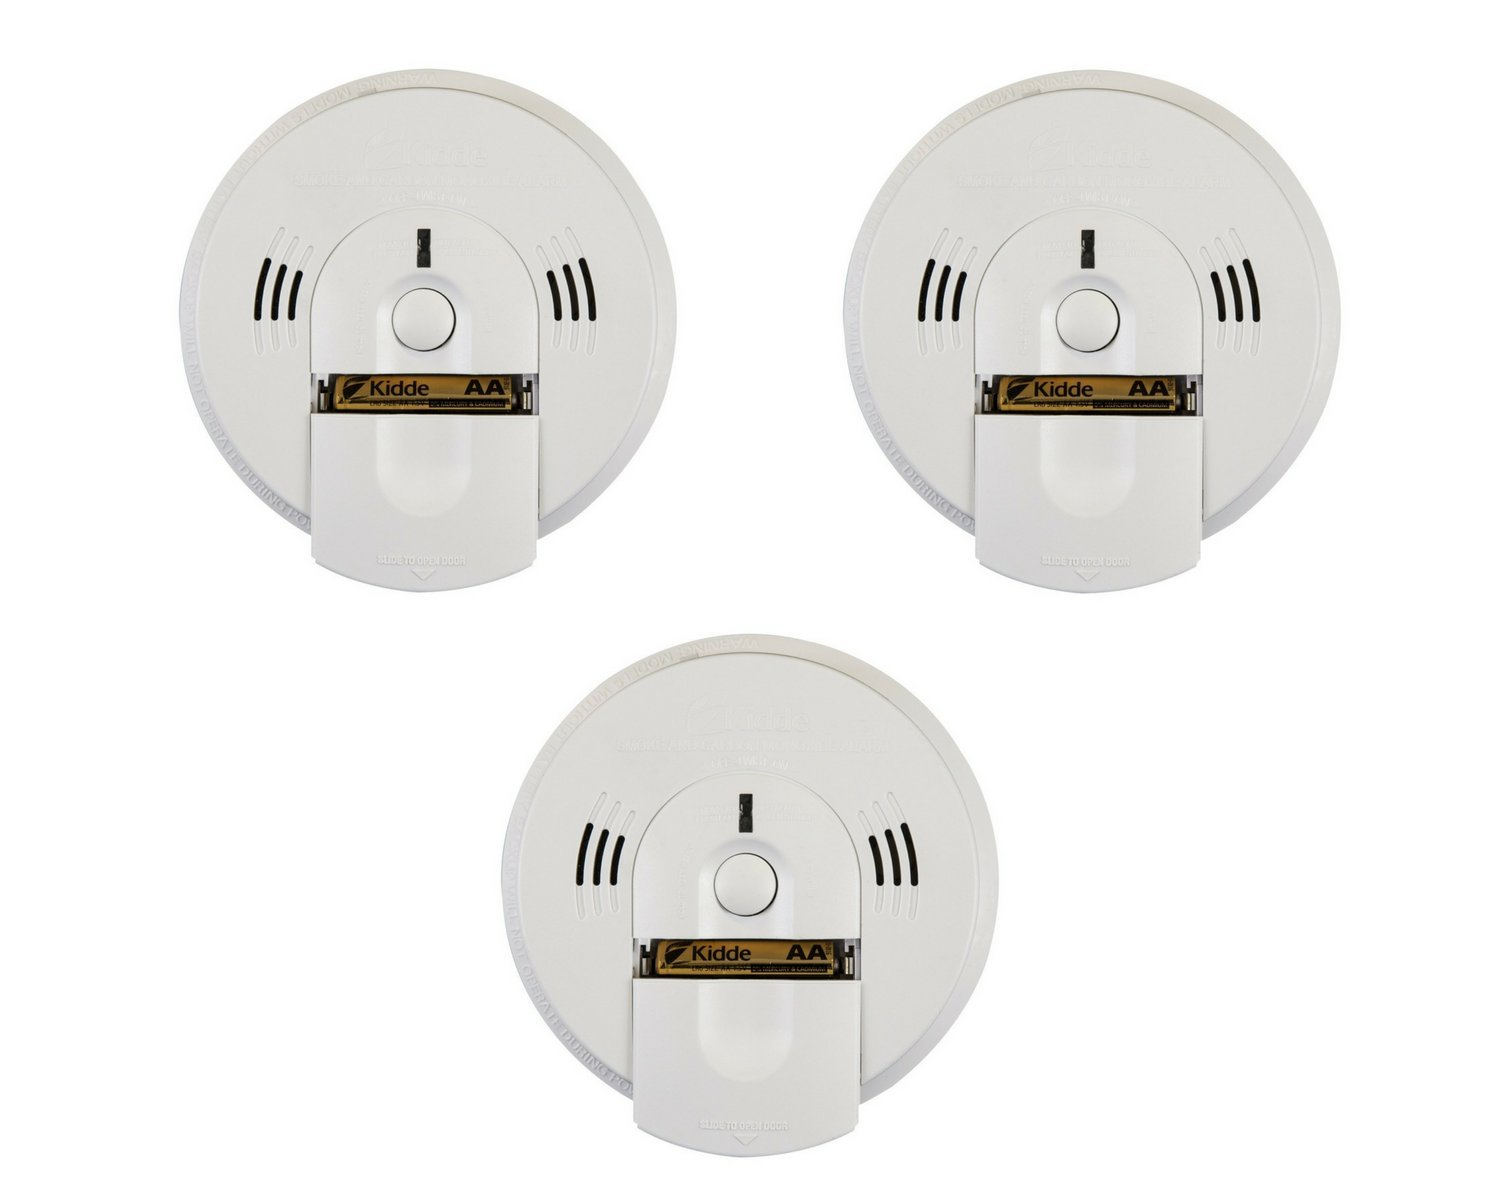 Kidde KN-COSM-BA Battery-Operated Combination Carbon Monoxide and Smoke Alarm with Talking Alarm (3-Pack)